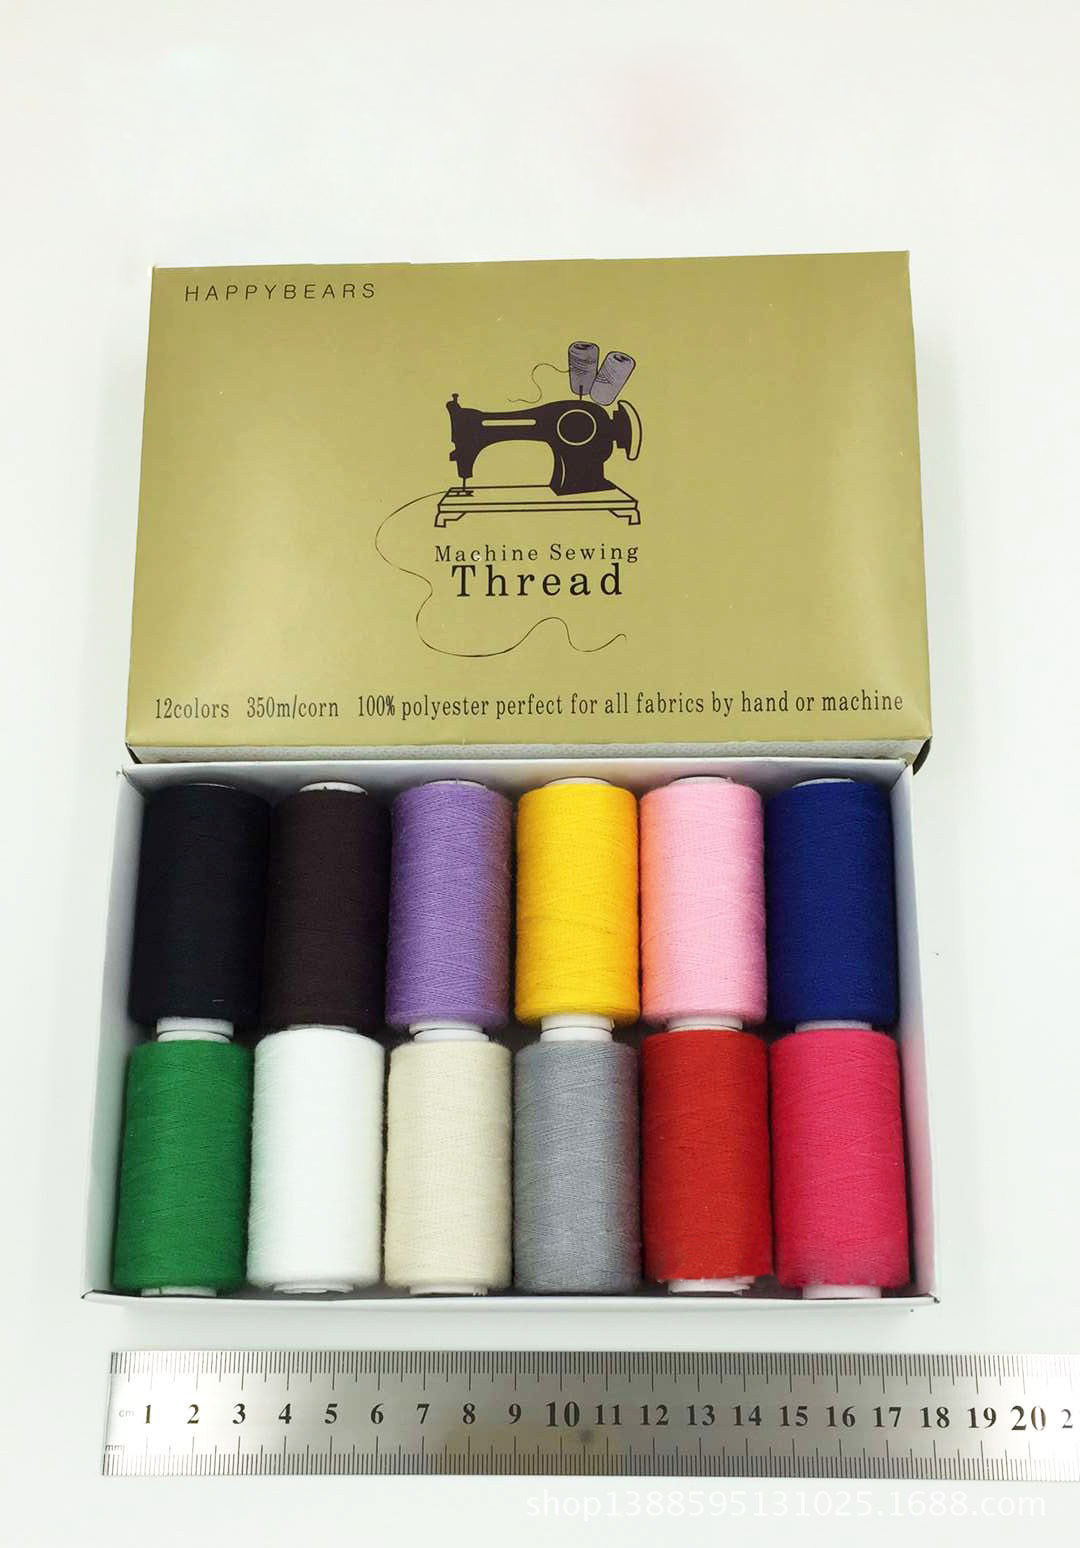 40s/2 polyester Sewing Threads 350 meters High Strength embroidery thread 12pcs/box Sewing Yarn